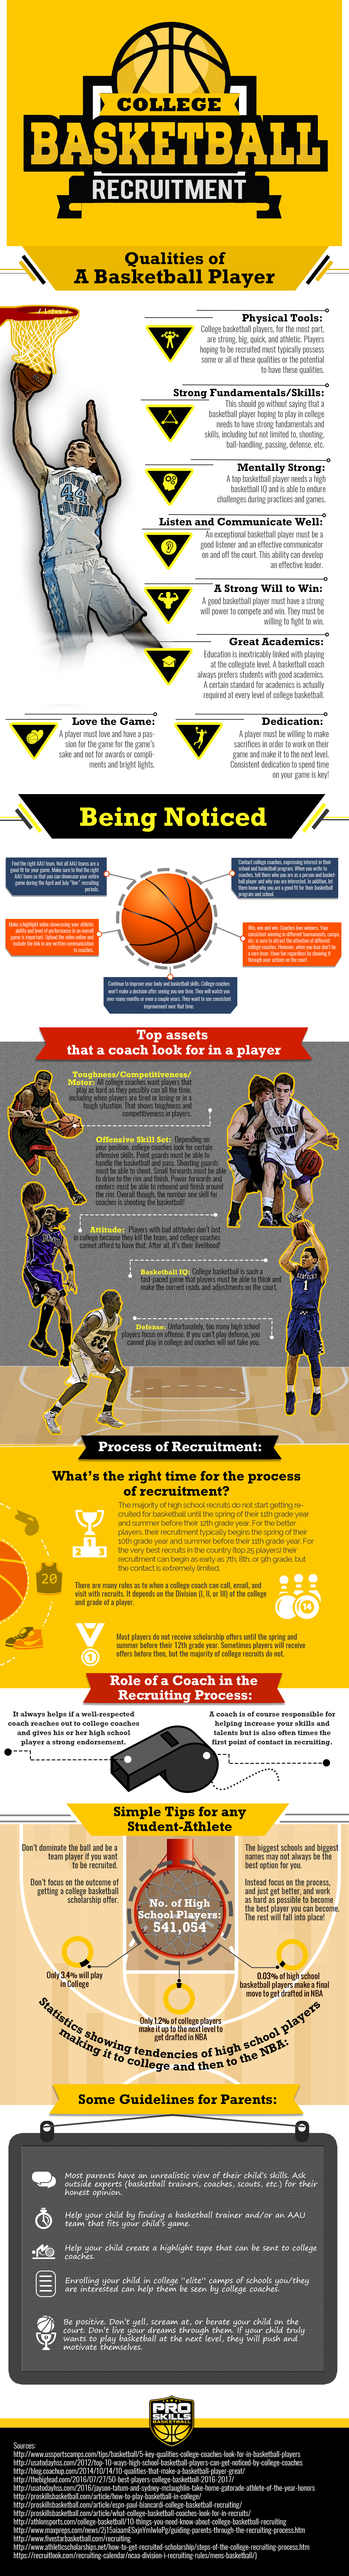 college basketball recruiting infographic